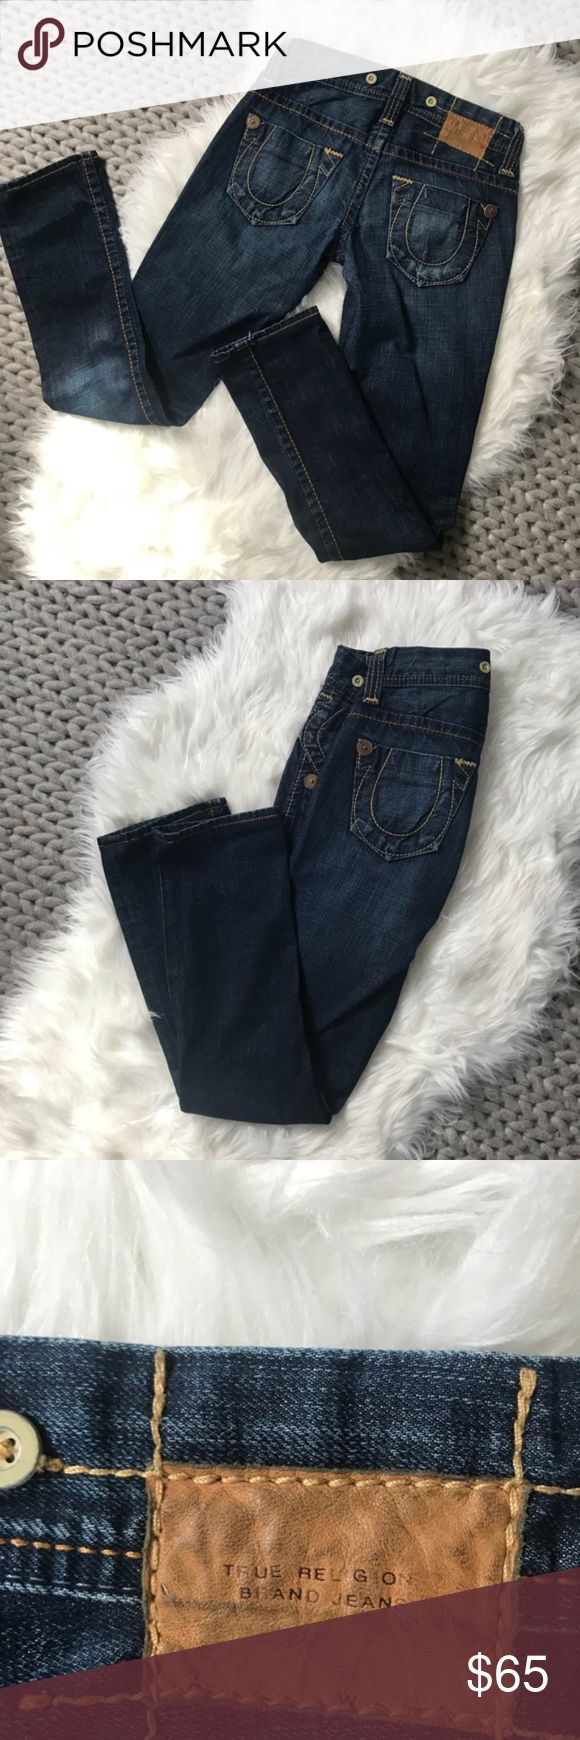 "{True Religion} Straight Leg Denim Jeans- like new {True Religion} Straight Leg Denim Jeans- like new. No fraying at bottom hem. Excellent condition. Non smoking home. Inseam: 30"" Waist: Size 24 True Religion Jeans Straight Leg"